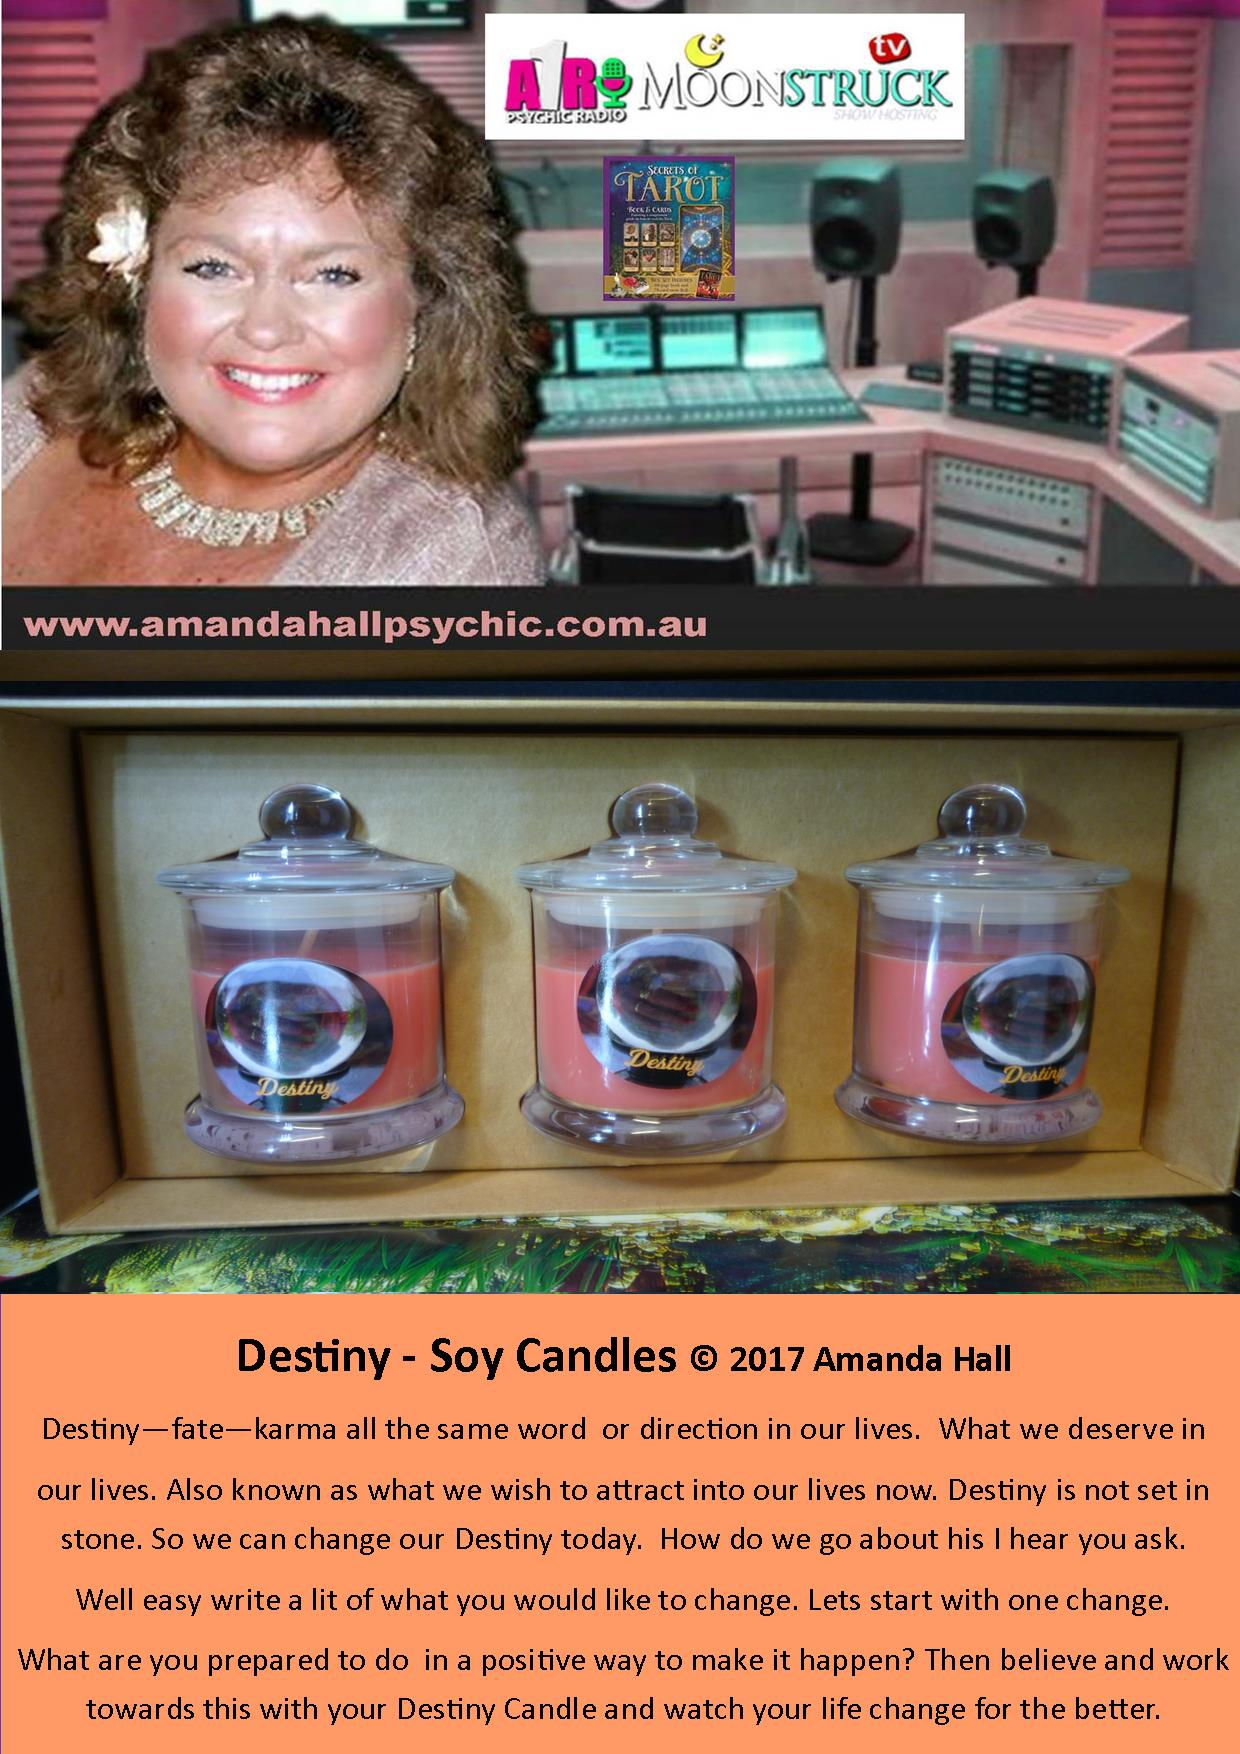 Destiny-gift-box-set-candles create the life your were mean to live today